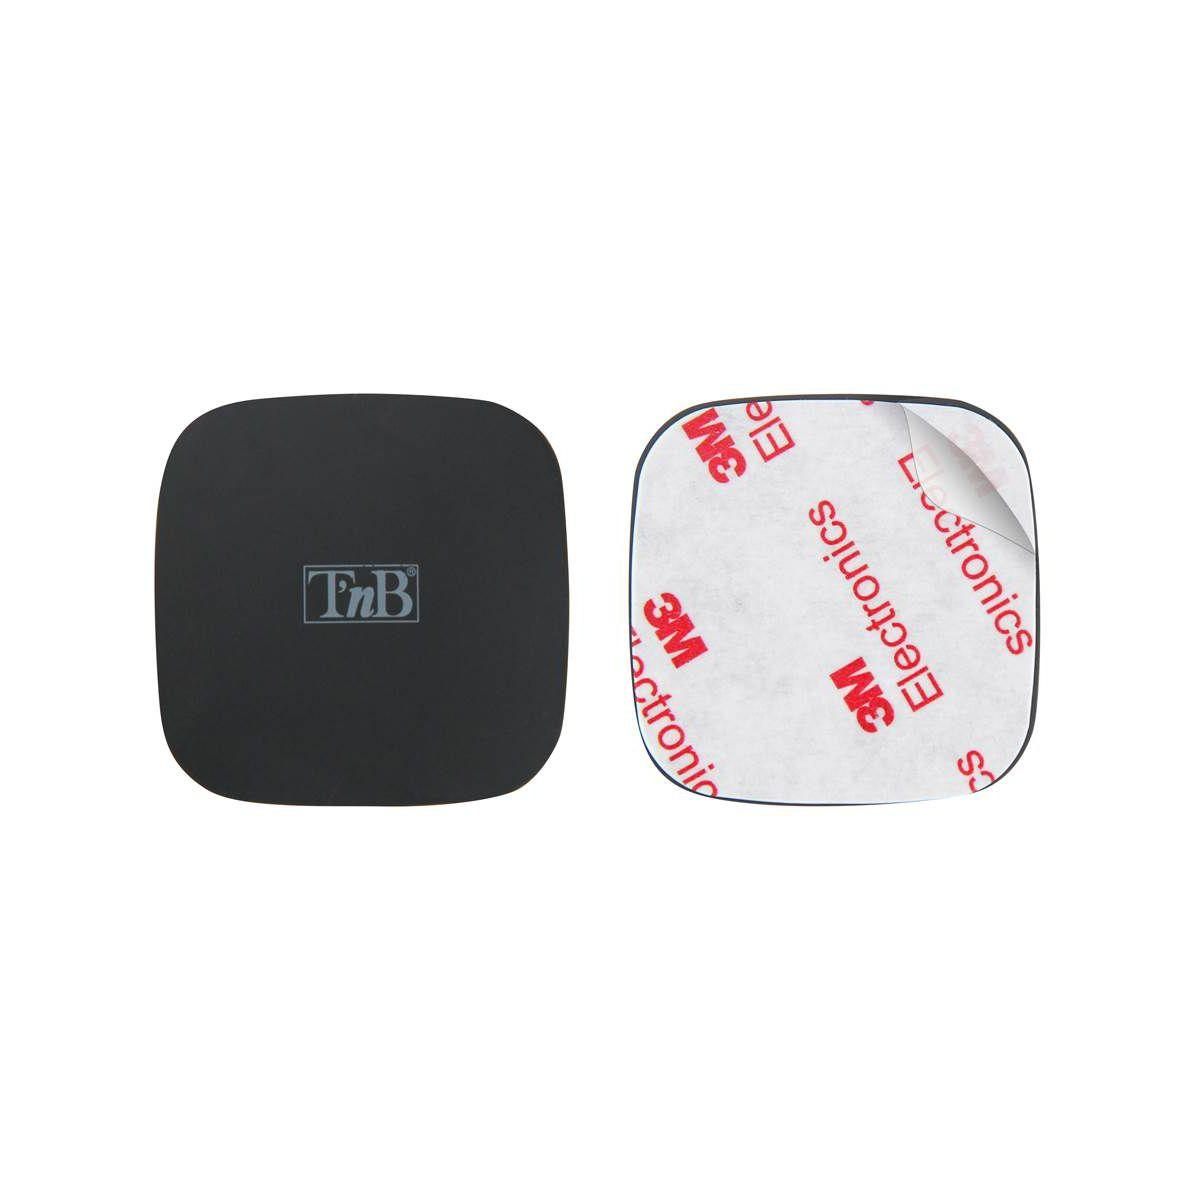 Support smartphone tnb patch magn�tique adh�sif (photo)